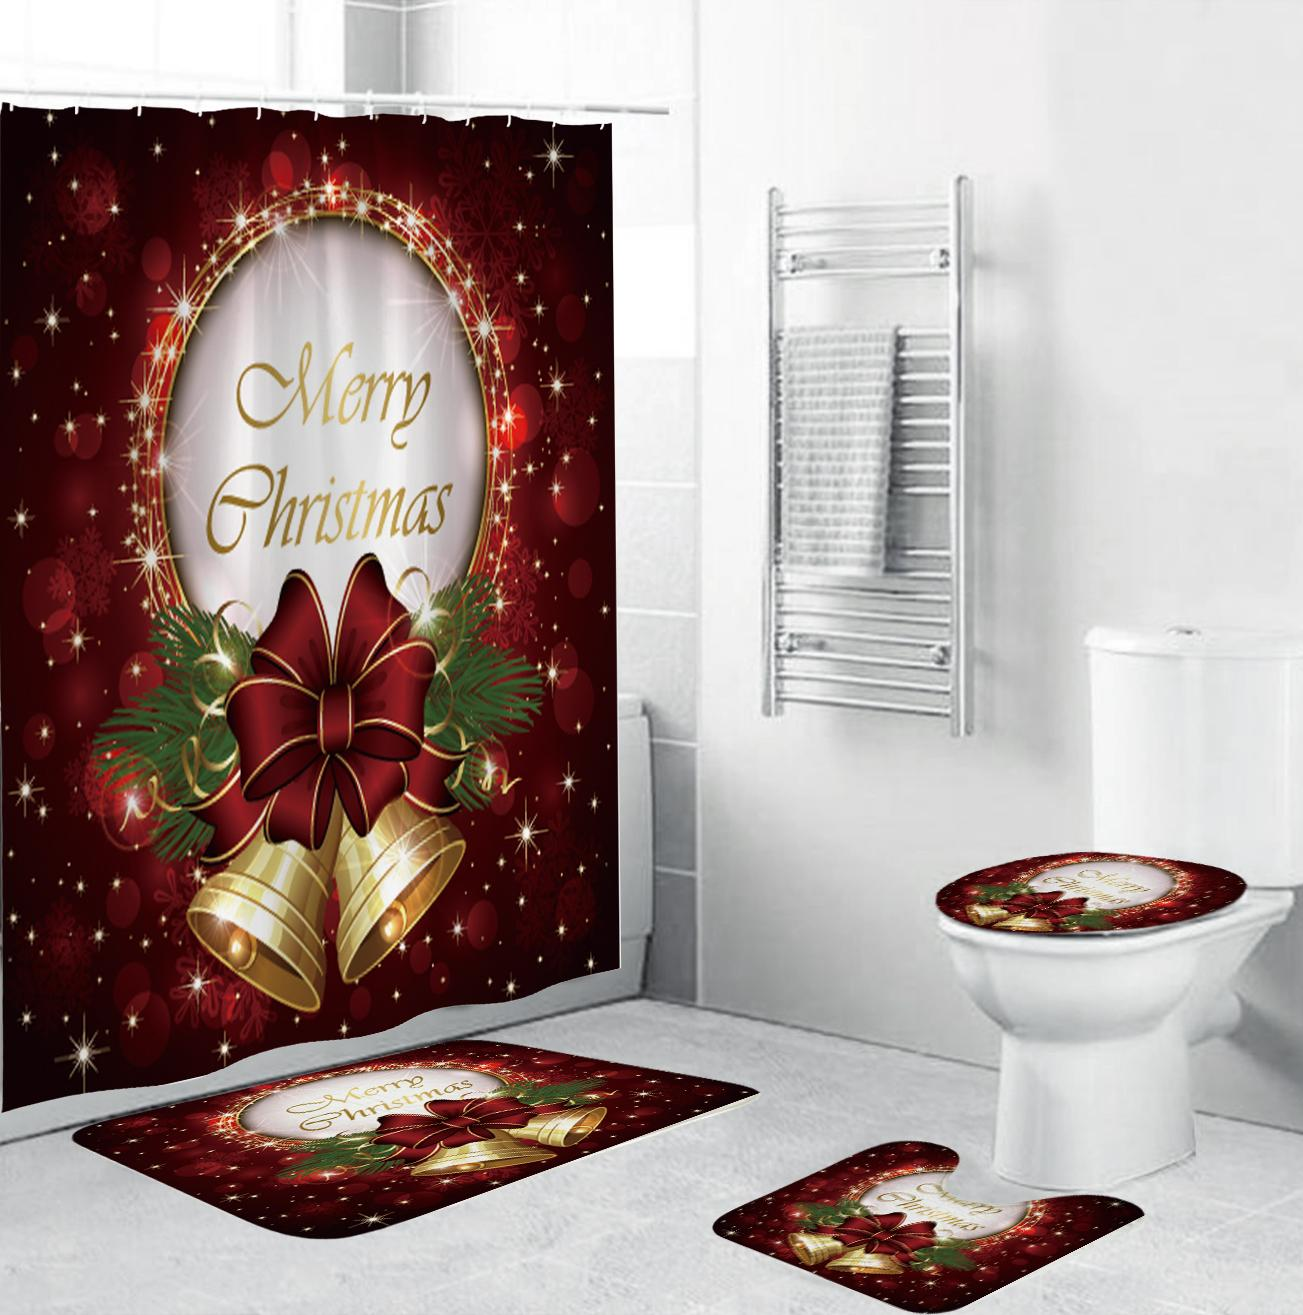 9 Waterproof Christmas Bathroom Accessories Sets Shower Curtain+Bath Mat  +Toilet Seat Cover+ Pedestal Rug Bathroom Sets From Gl9, $9.9